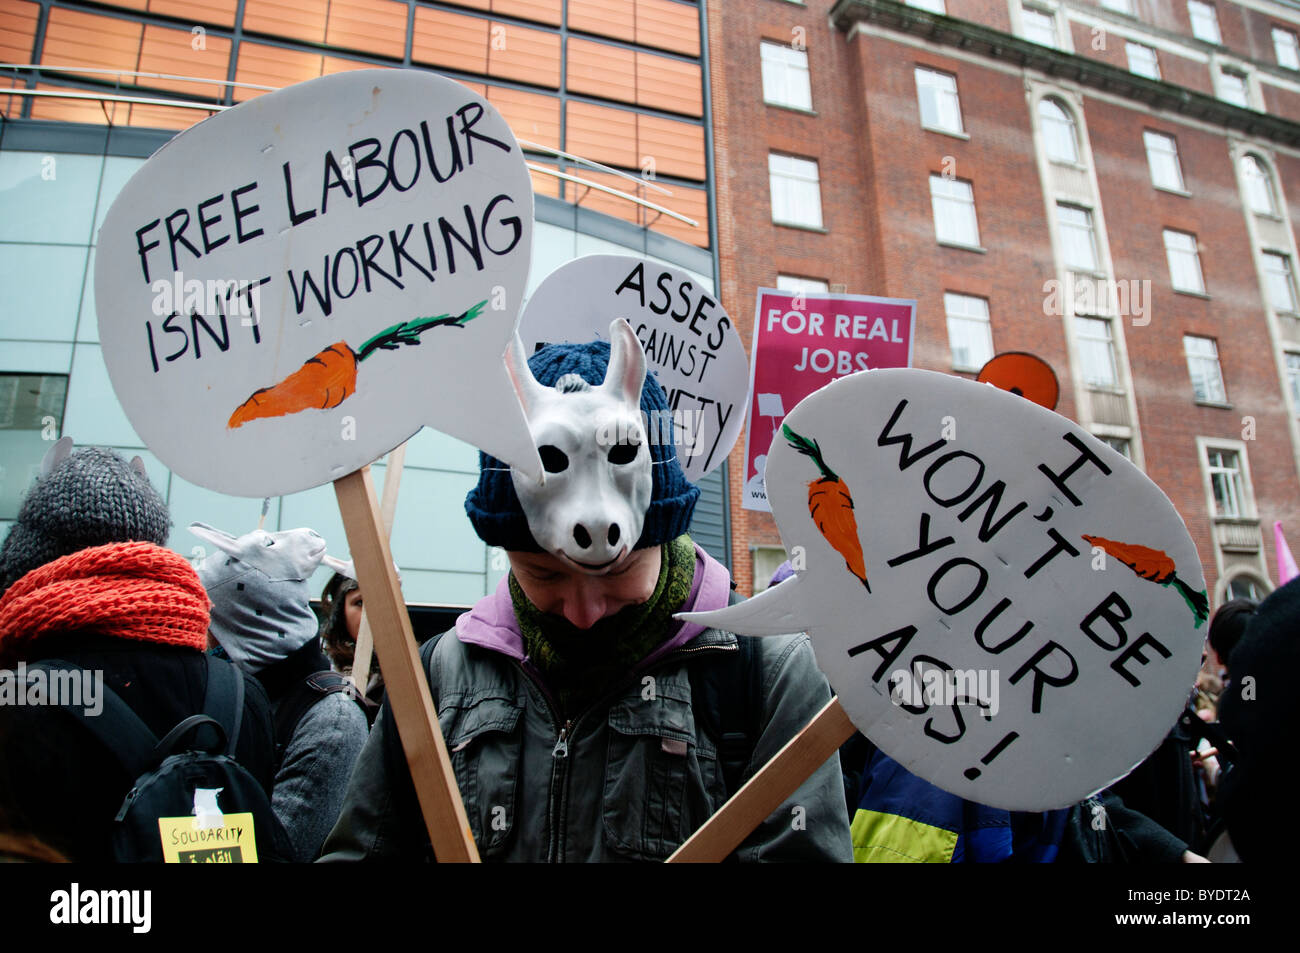 Demonstration against education cuts. Protesters with donkey  masks and carrots with placards - Stock Image